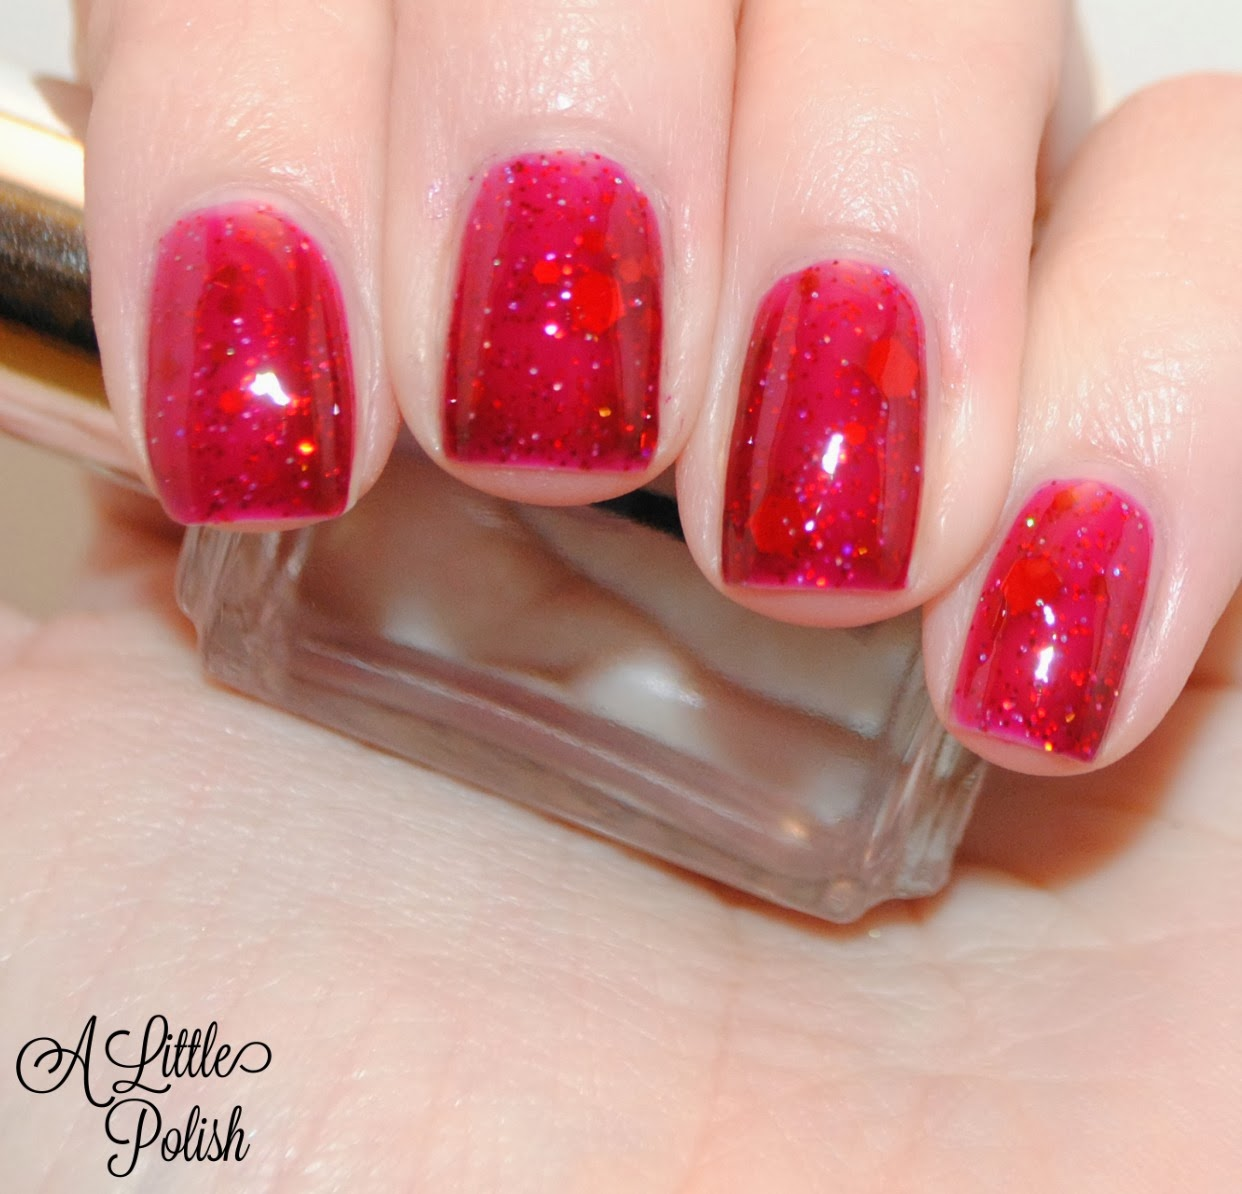 A Little Polish: Delush Polish - Swatches & Review!